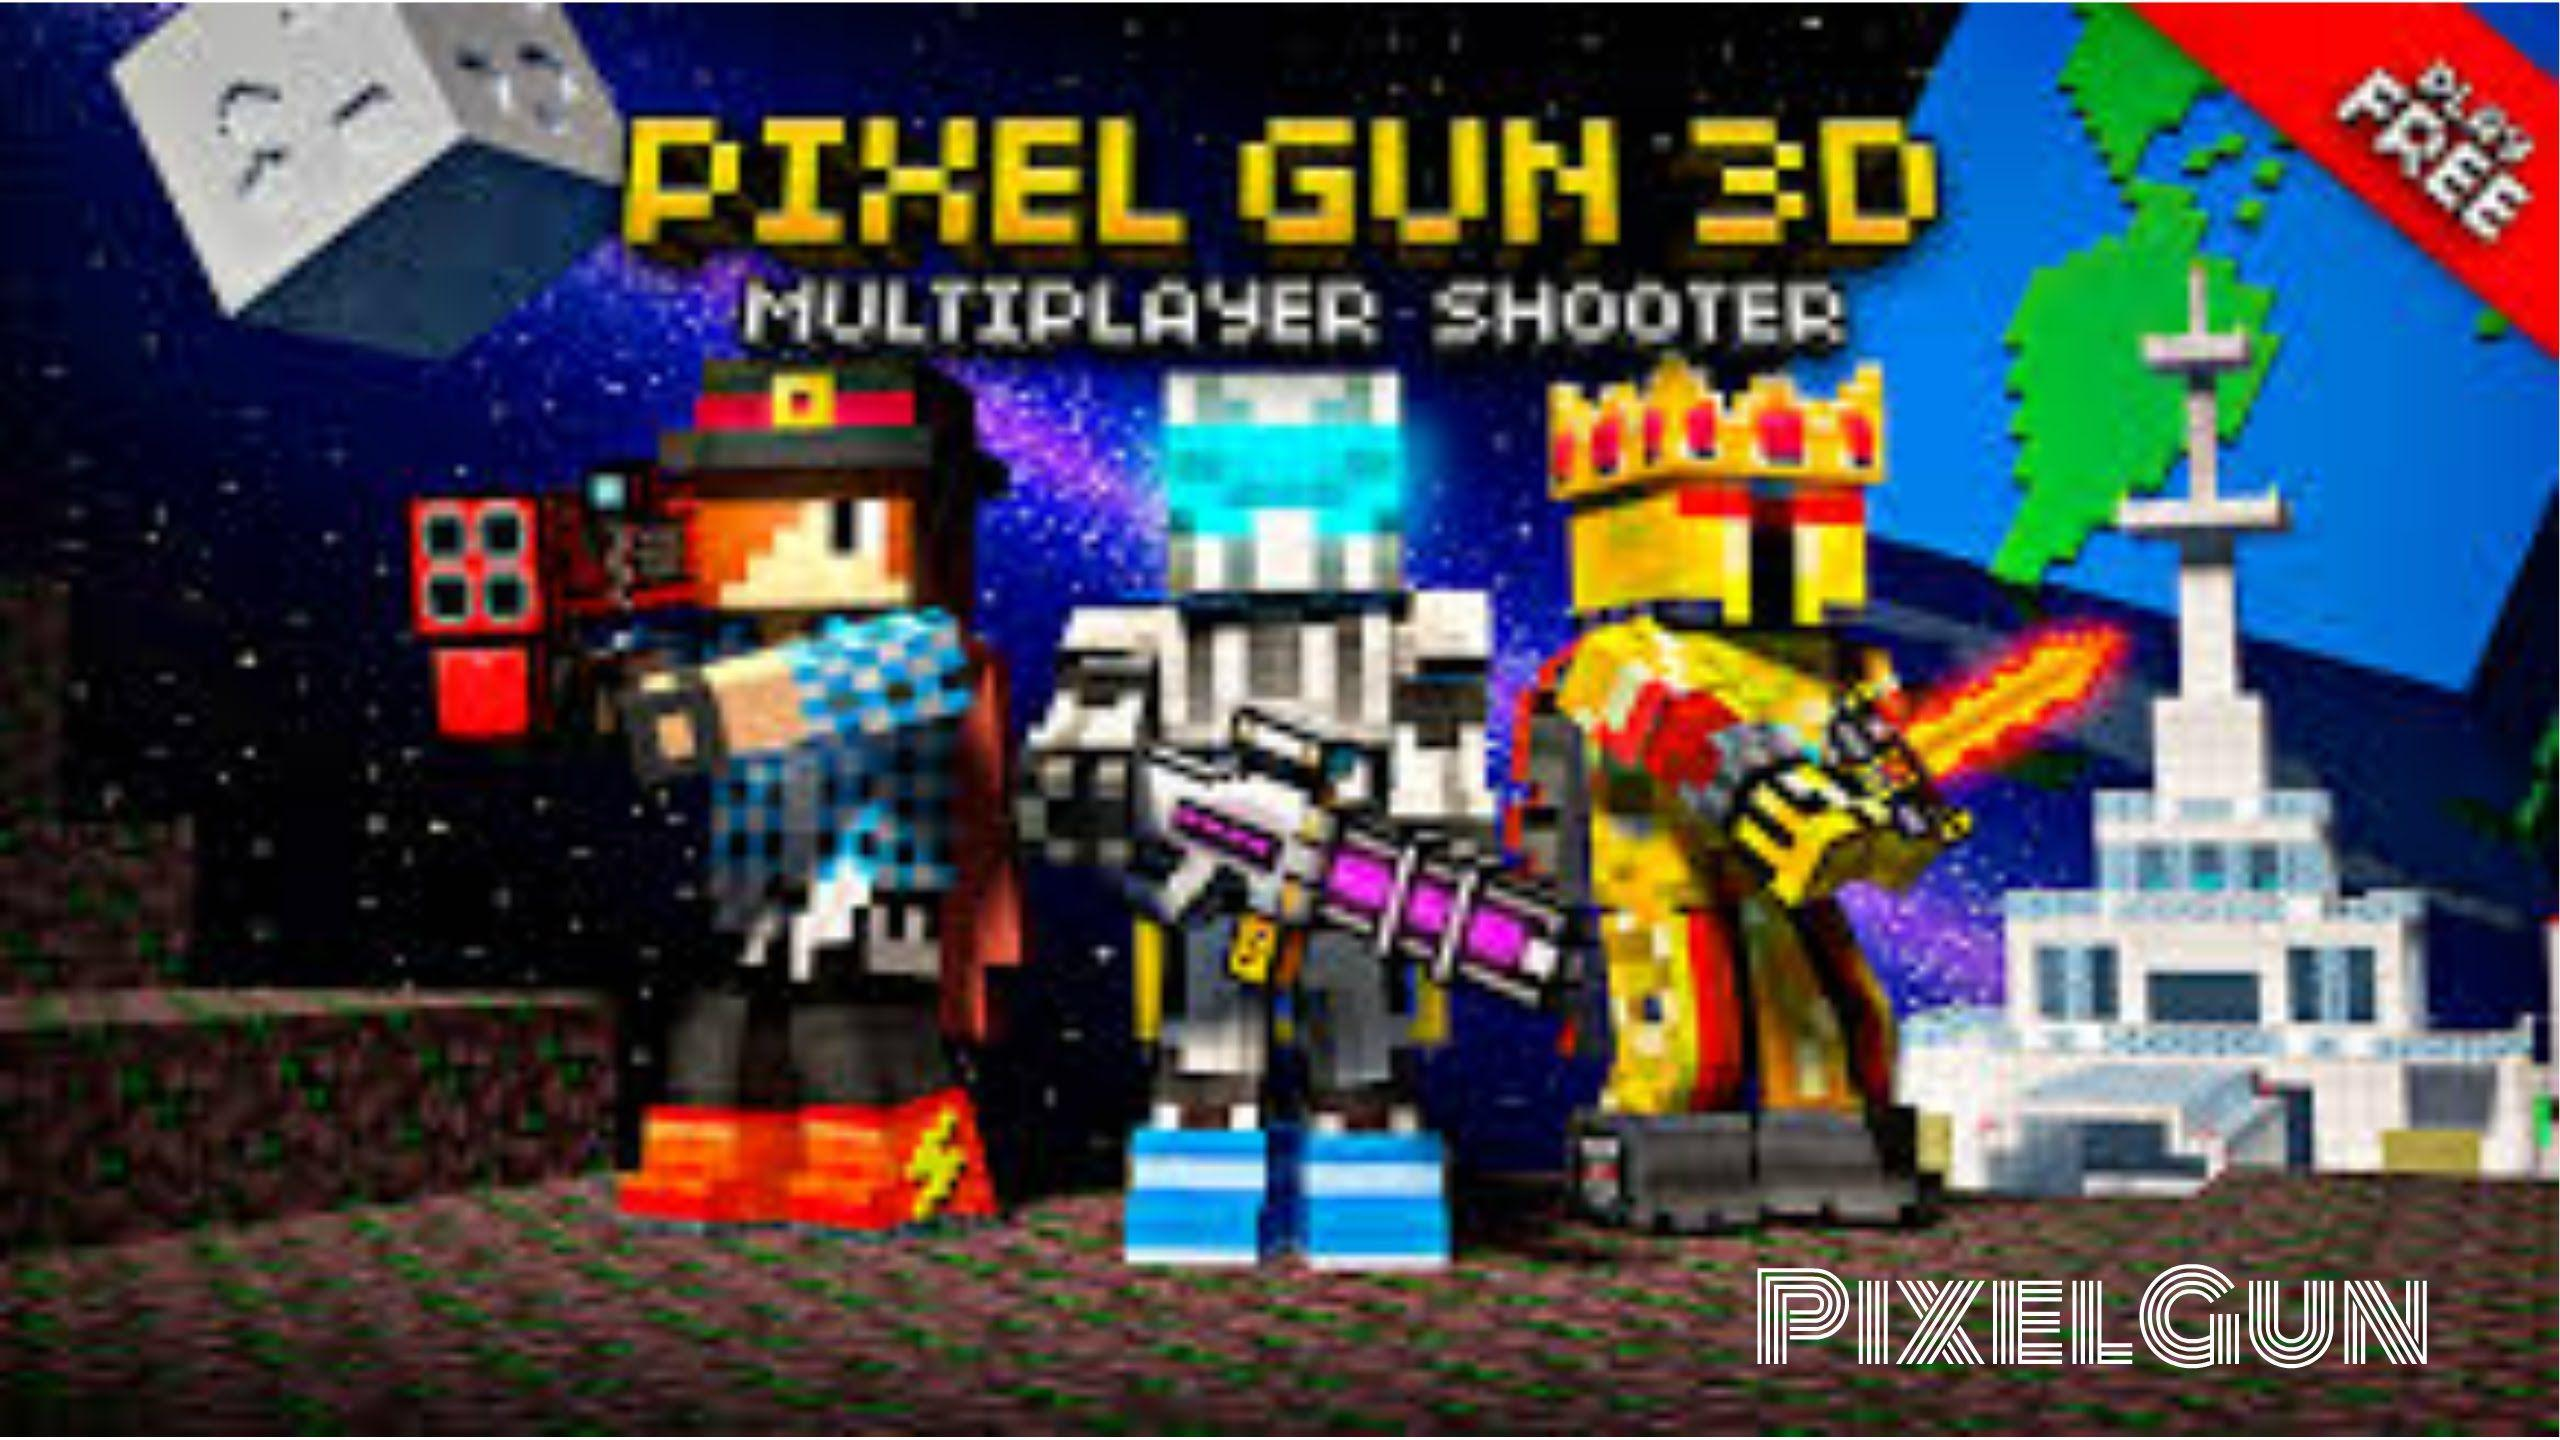 Pixel Gun 3D Wallpapers - Wallpaper Cave